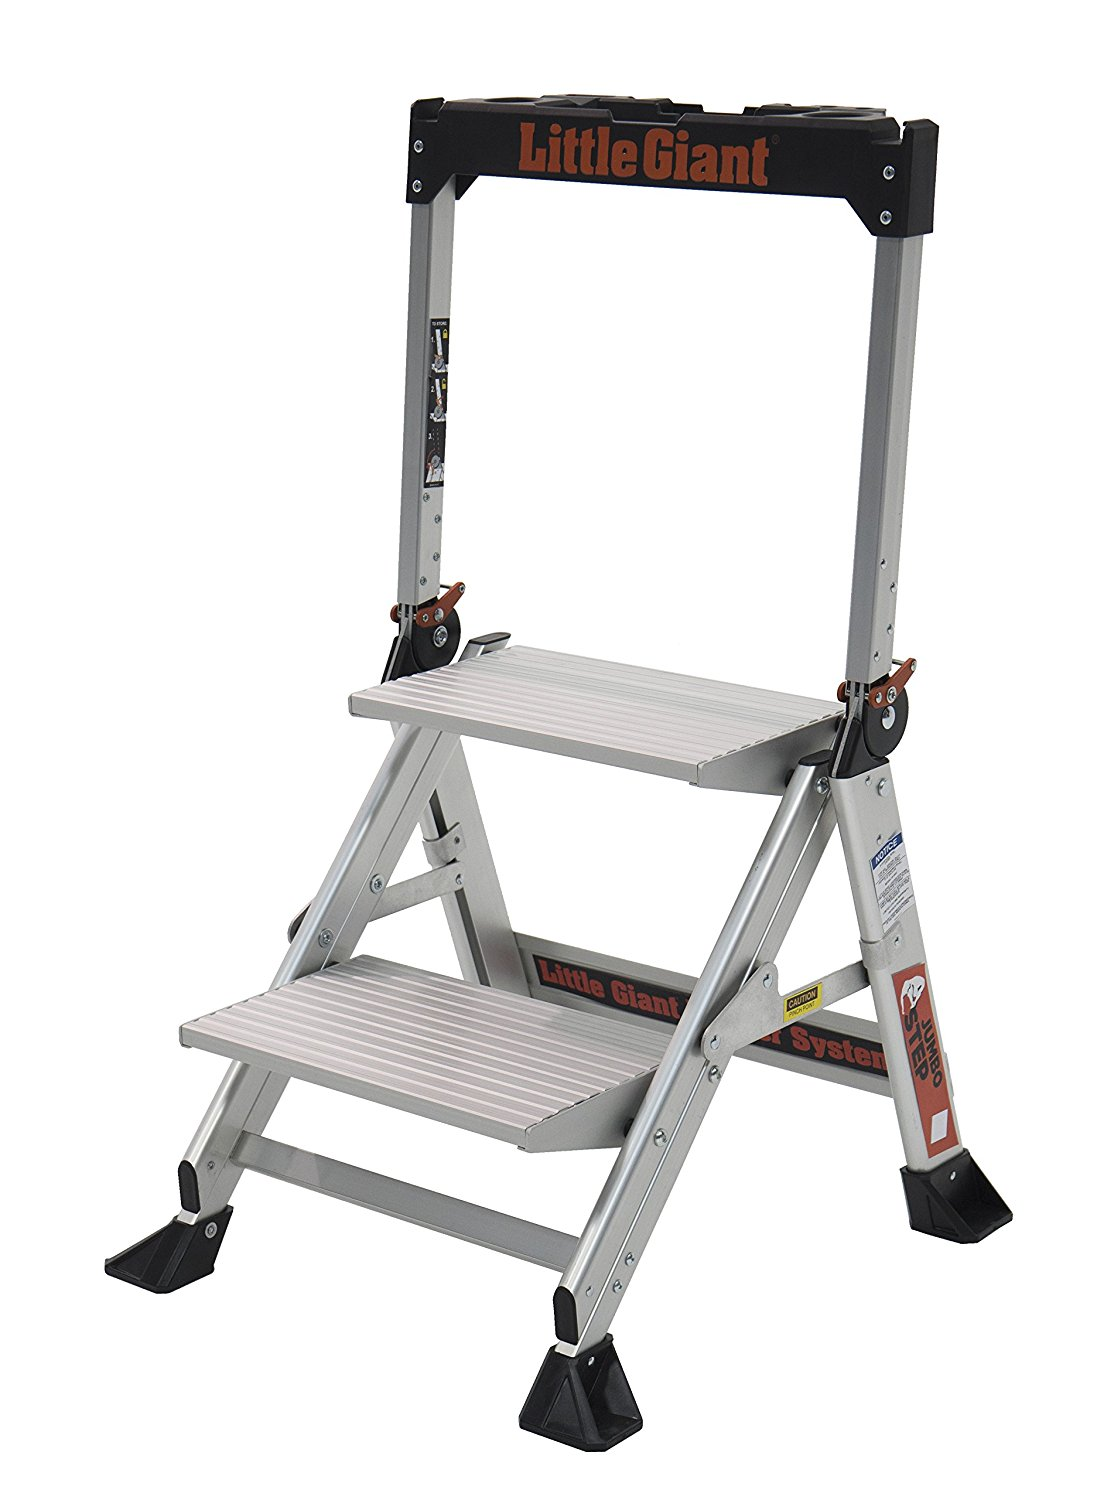 Little Giant® 10111 Wing Span Wall Stand-Off Accessory, PLUS FREIGHT